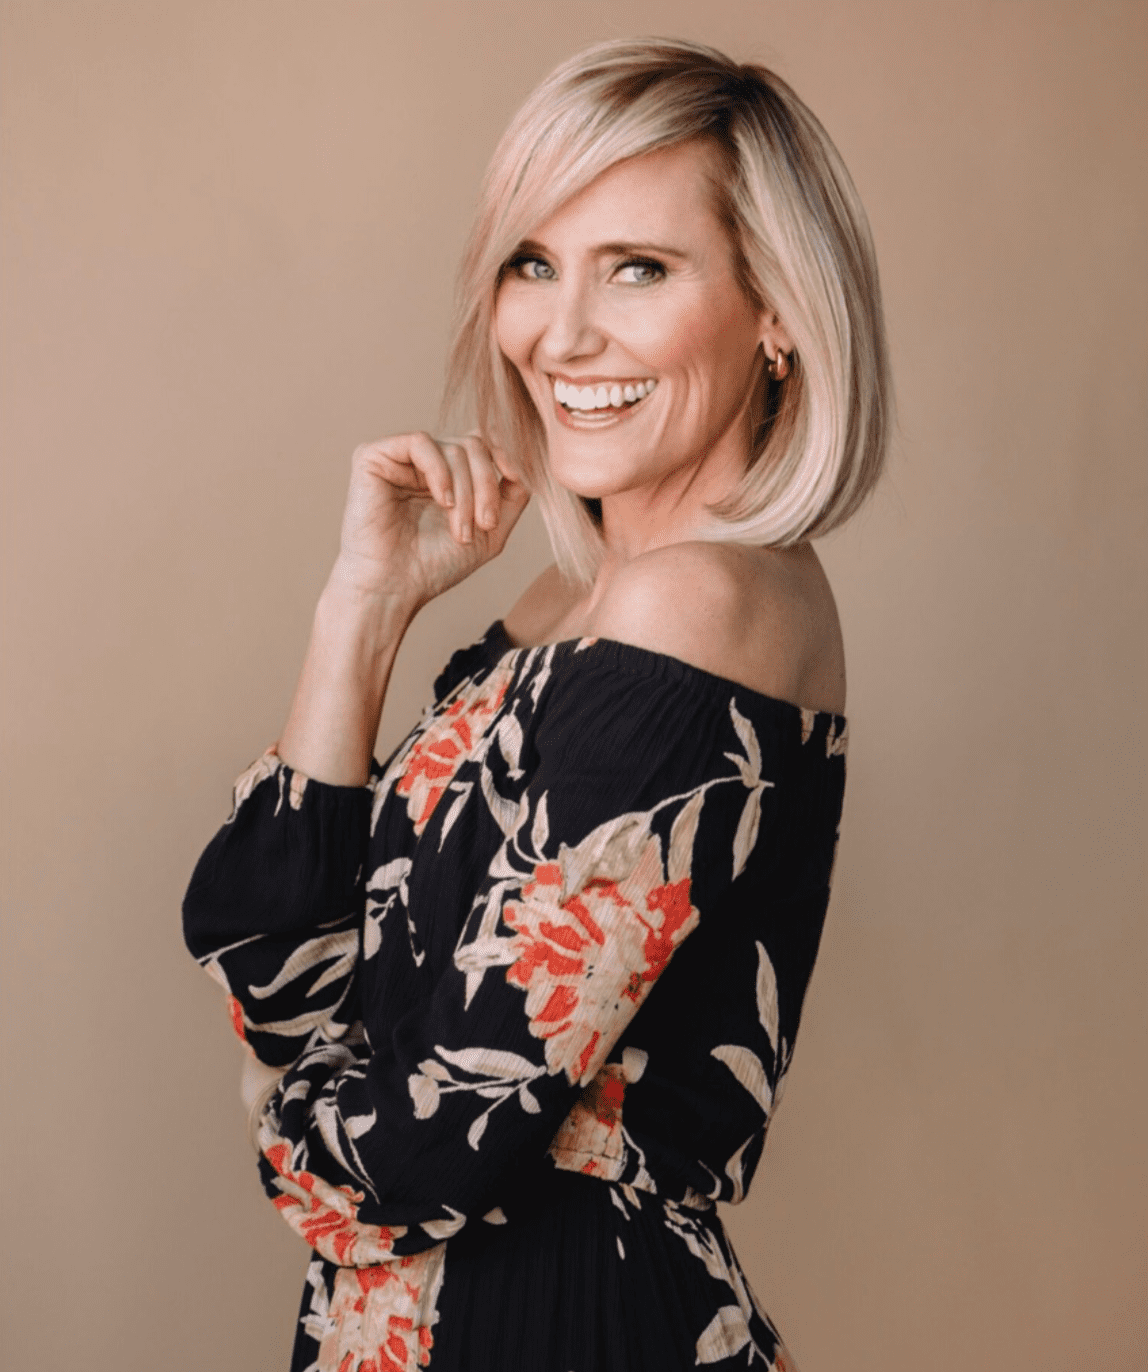 Blond-haired model wearing an off-the-shoulder, flower-printed blouse